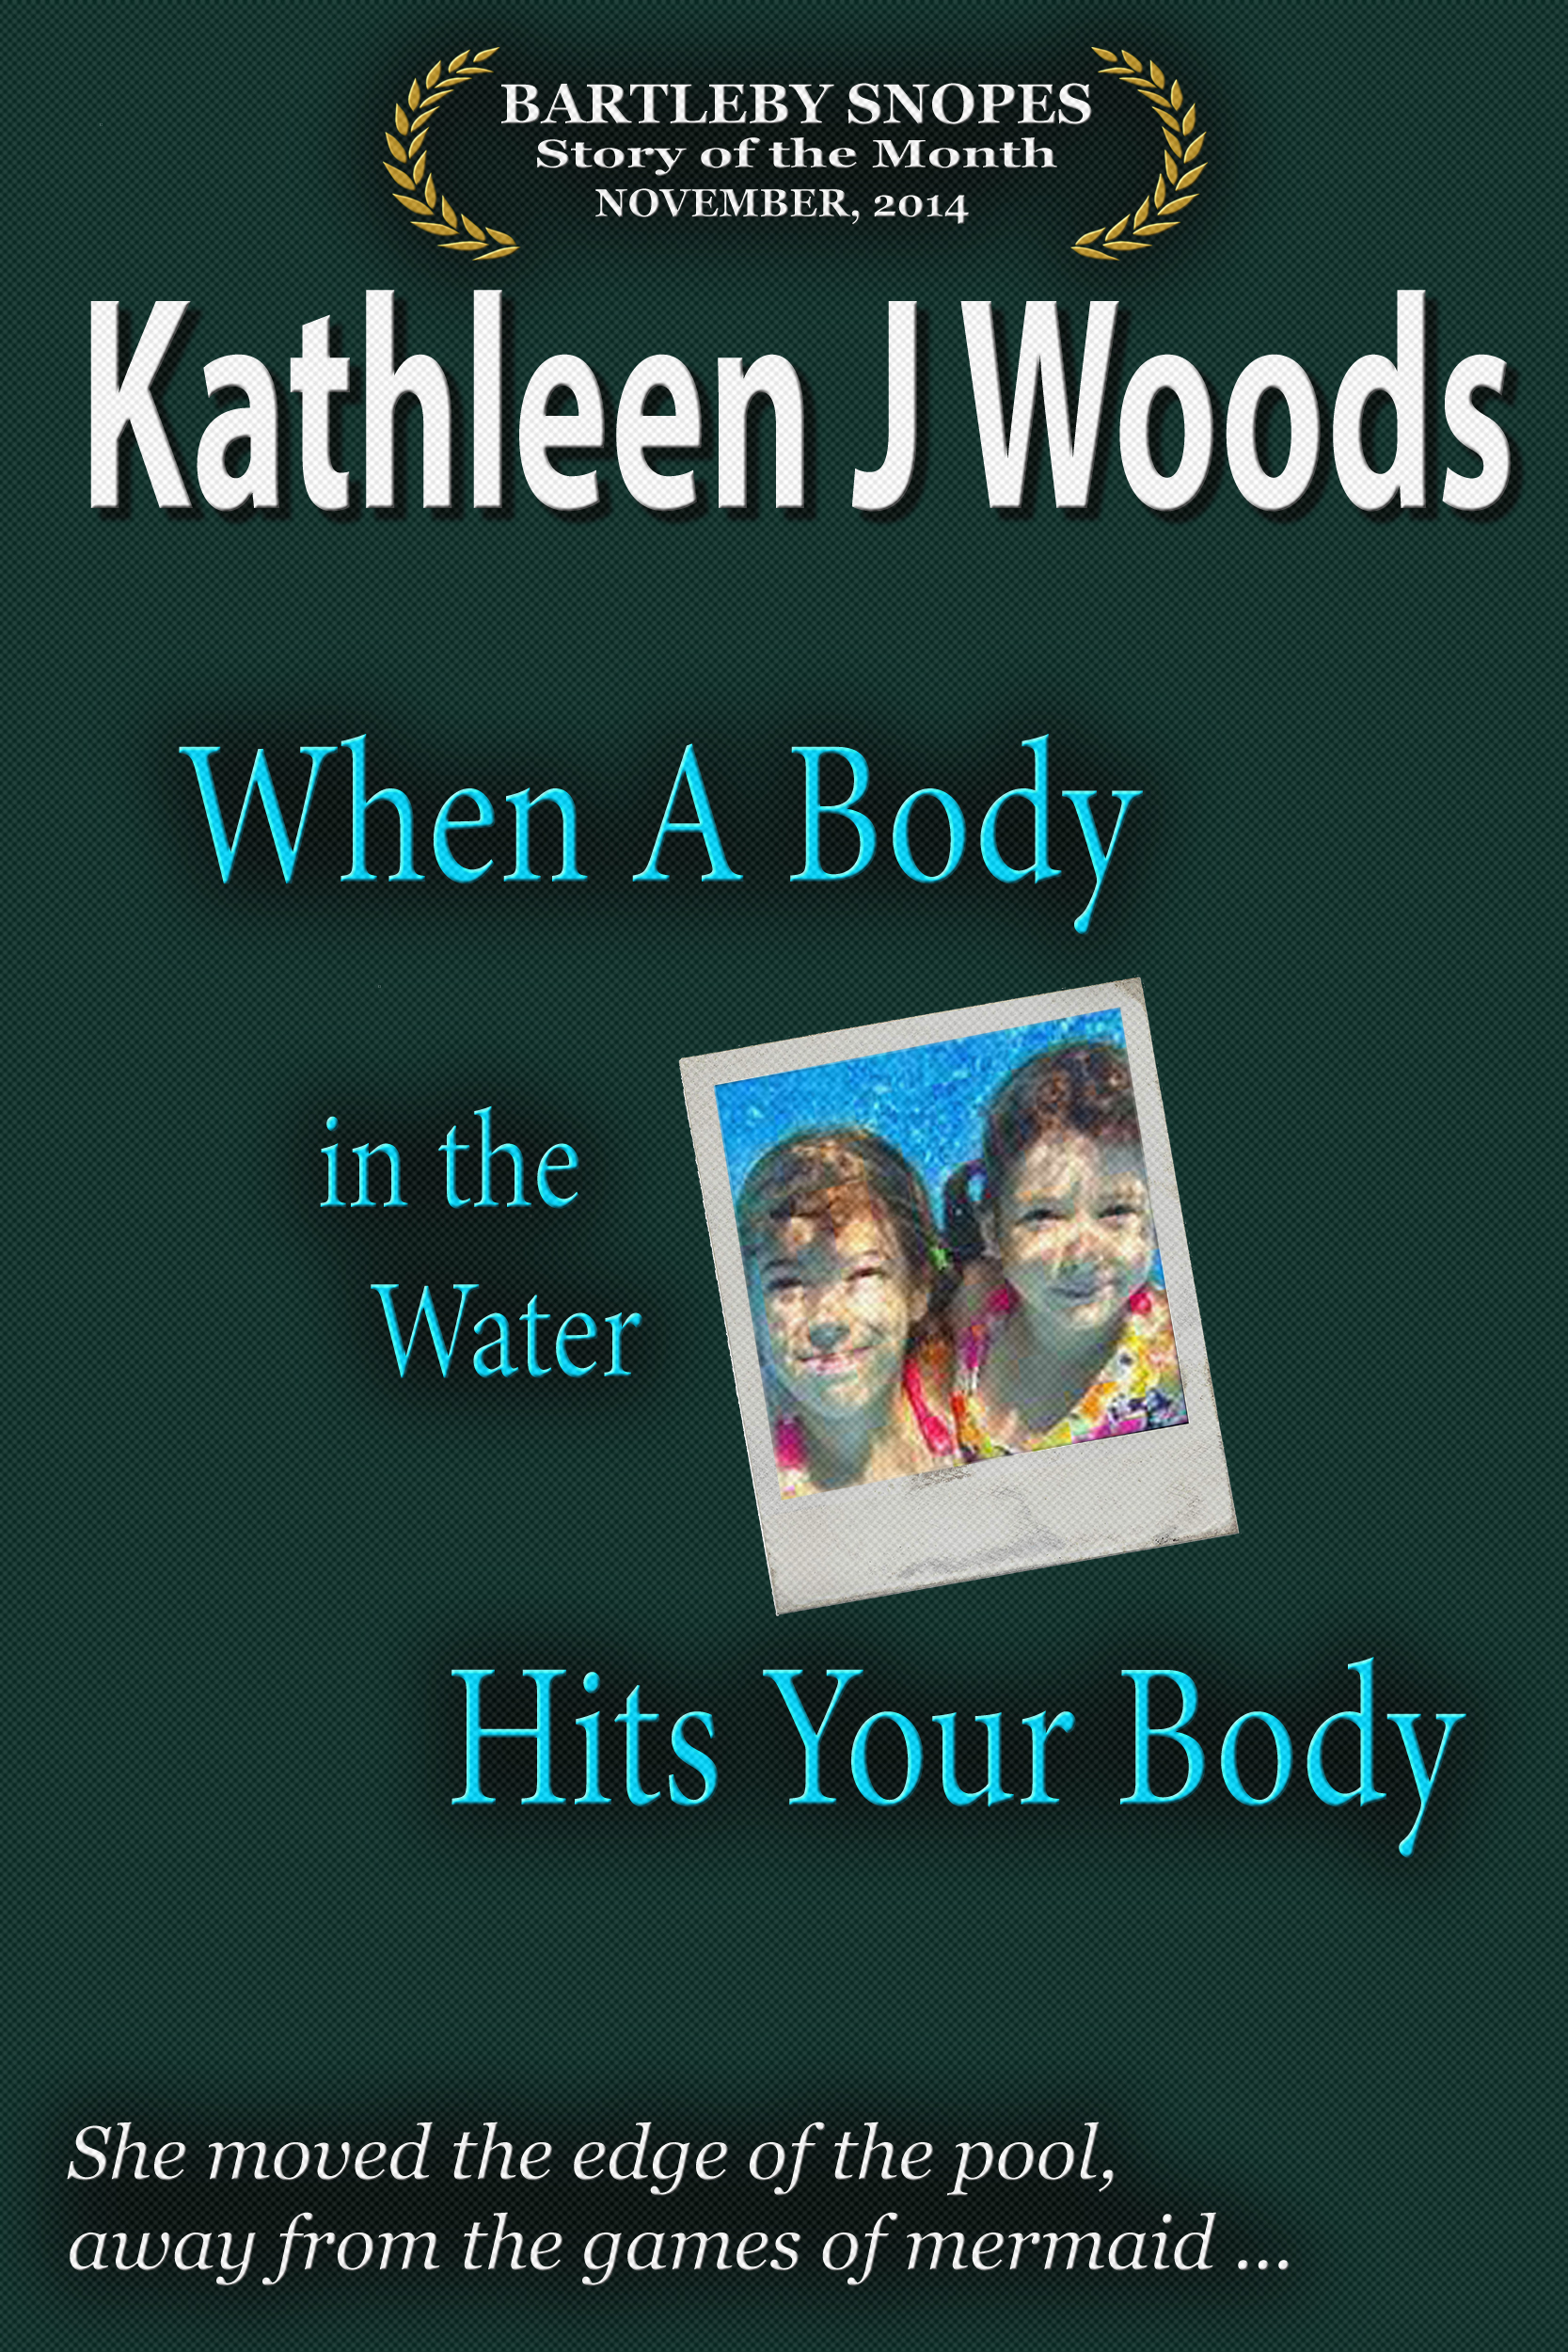 Kathleen J Woods Story of Month